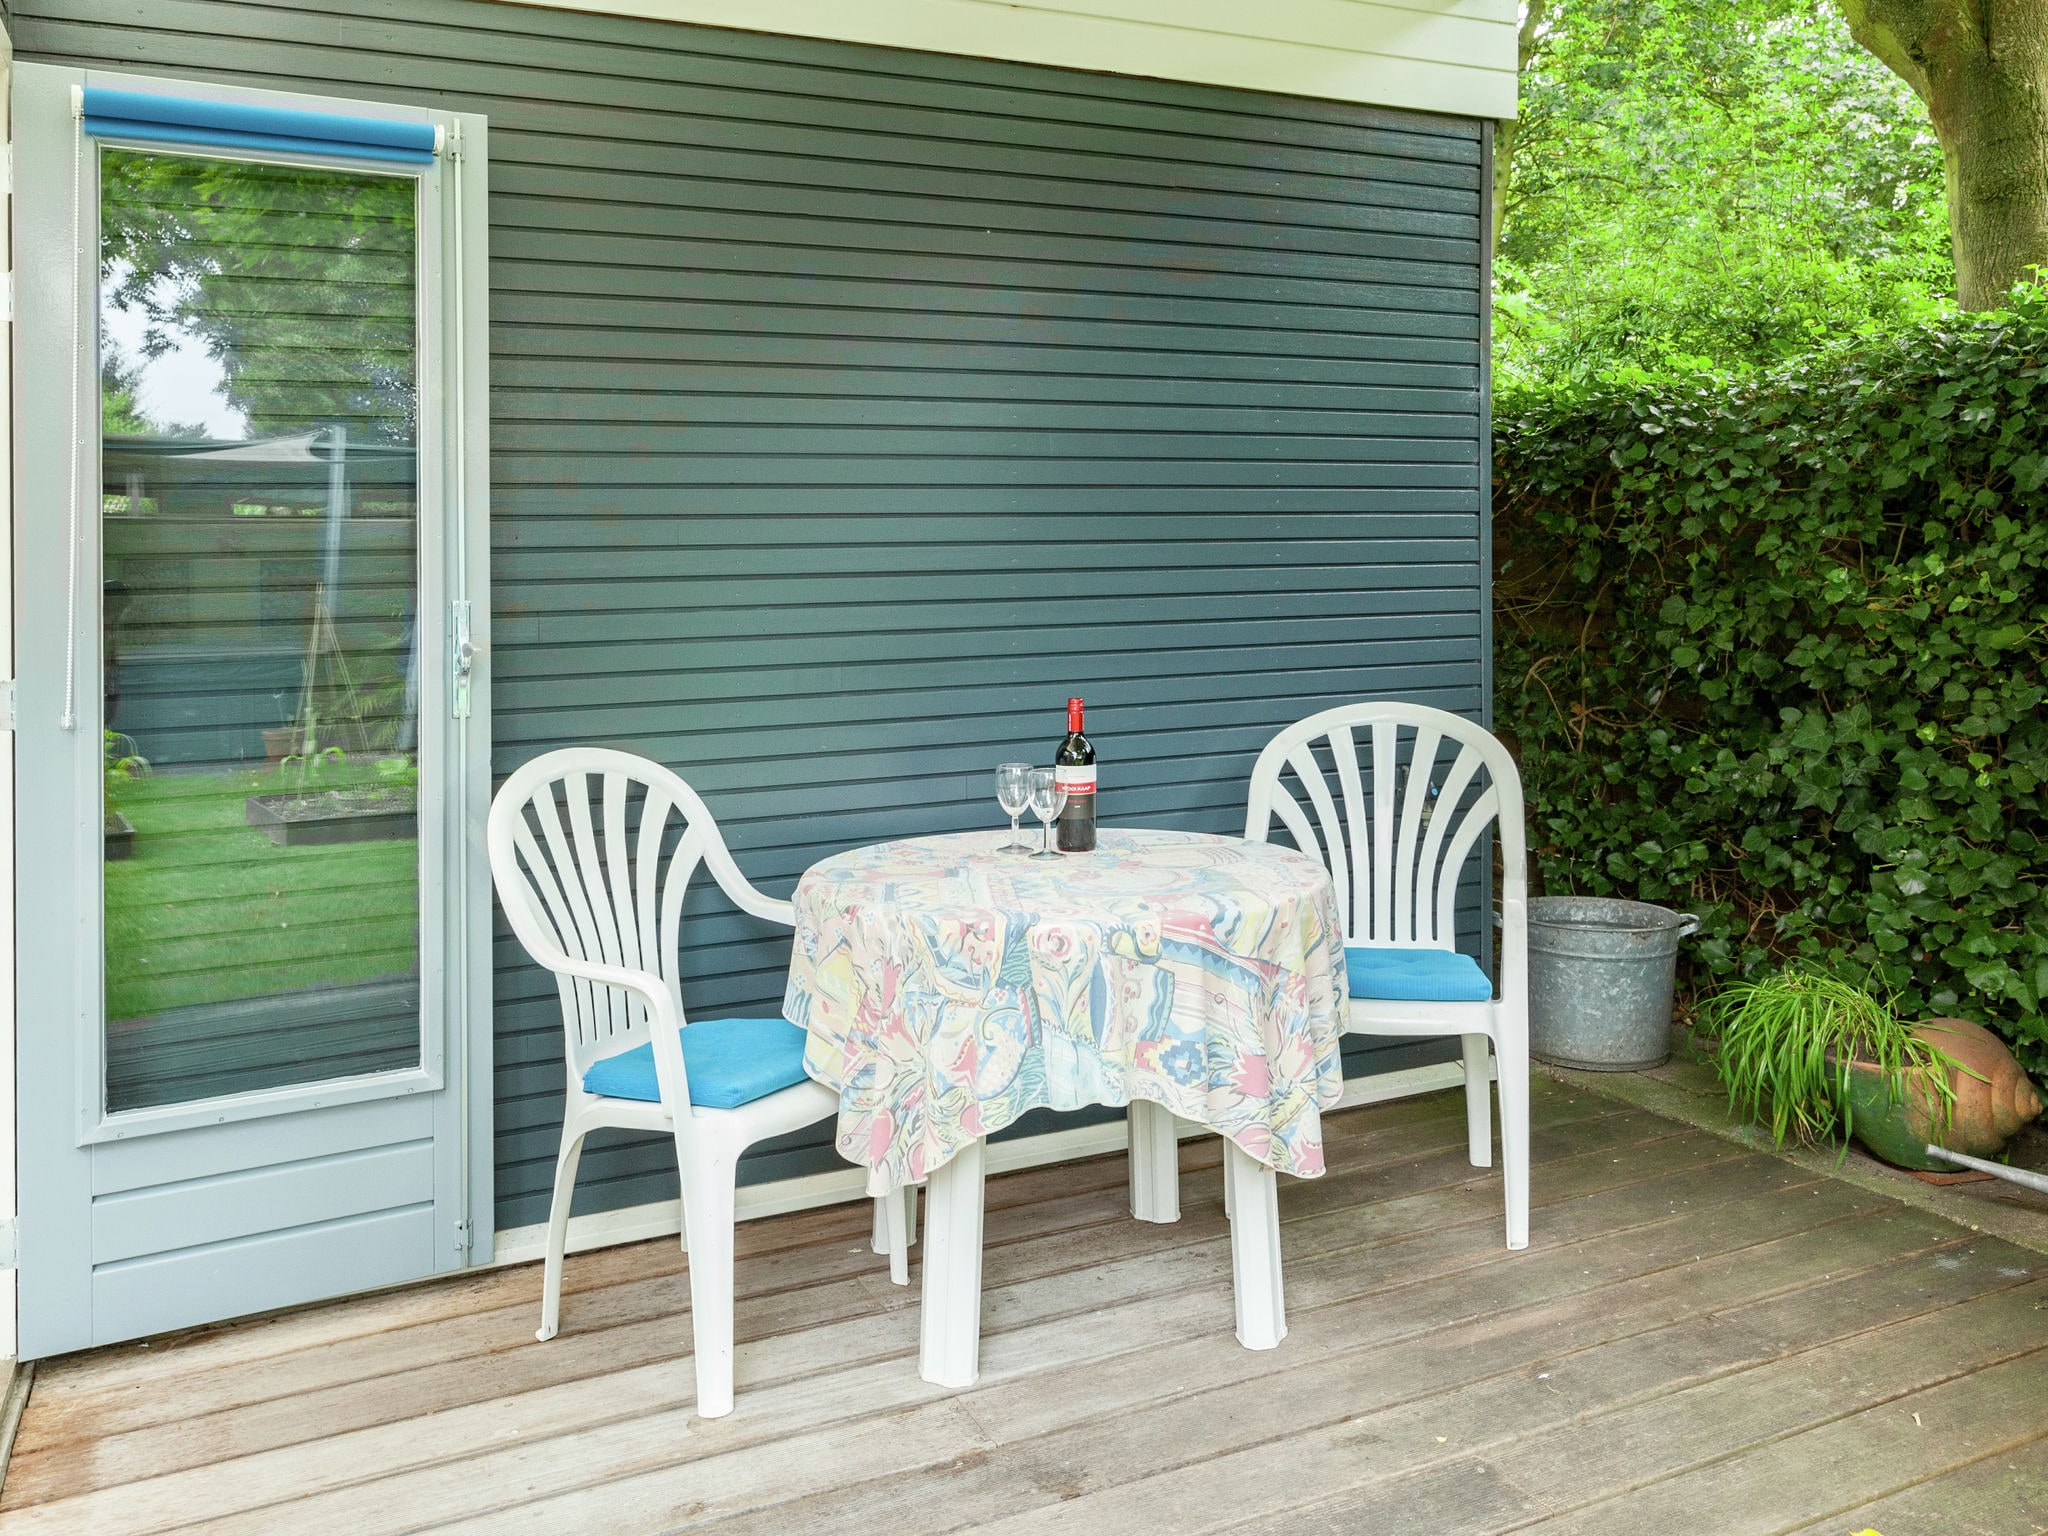 Holland | Zeeland | Holiday home 't Dolfijntje | all year | TerraceBalcony